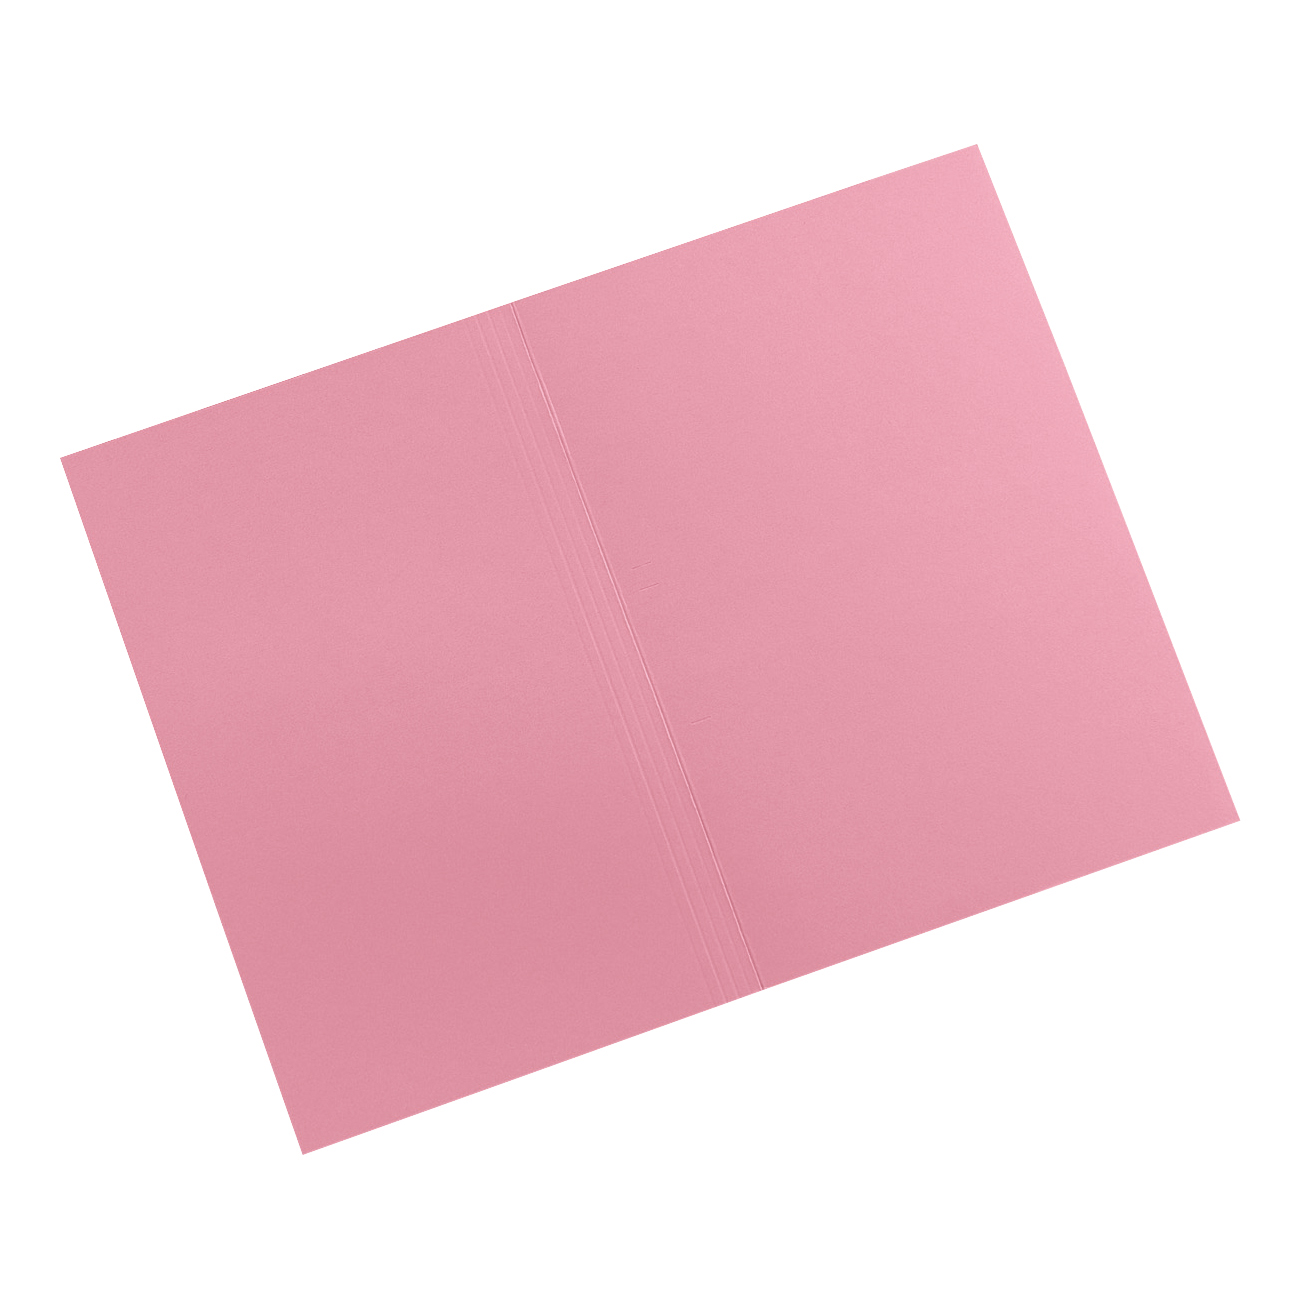 5 Star Elite Square Cut Folders 315gsm Heavyweight Manilla Foolscap Pink Pack 100